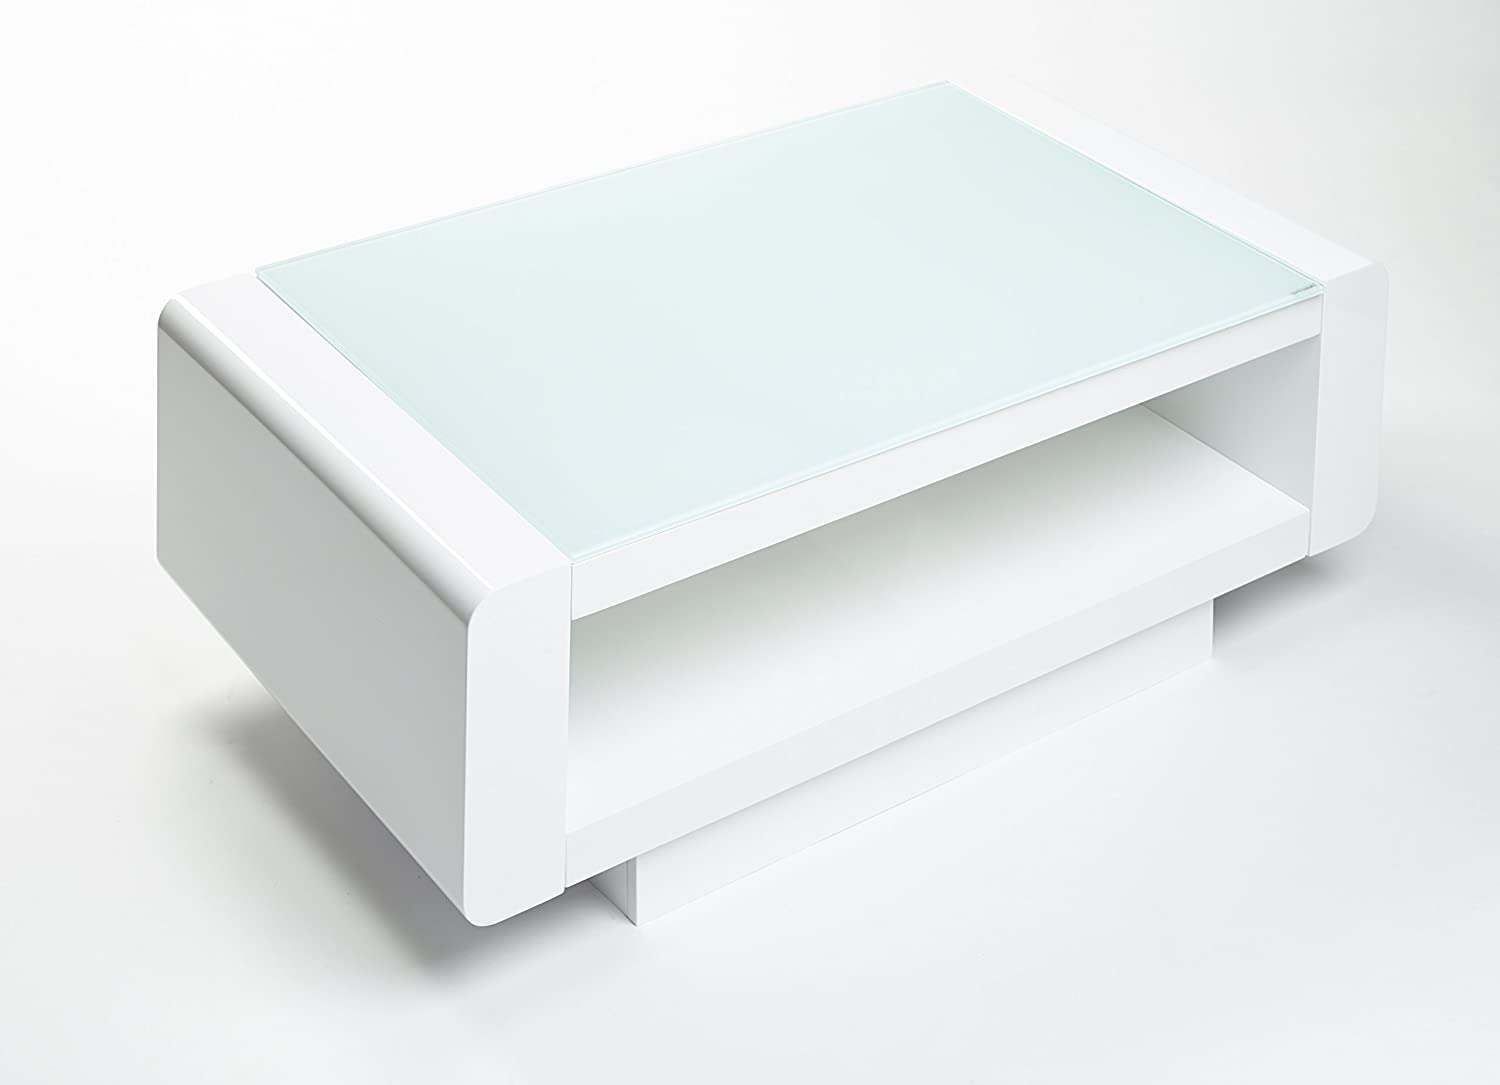 Miami modern rectangle contemporary designer coffee table white miami modern rectangle contemporary designer coffee table white amazon kitchen home geotapseo Images